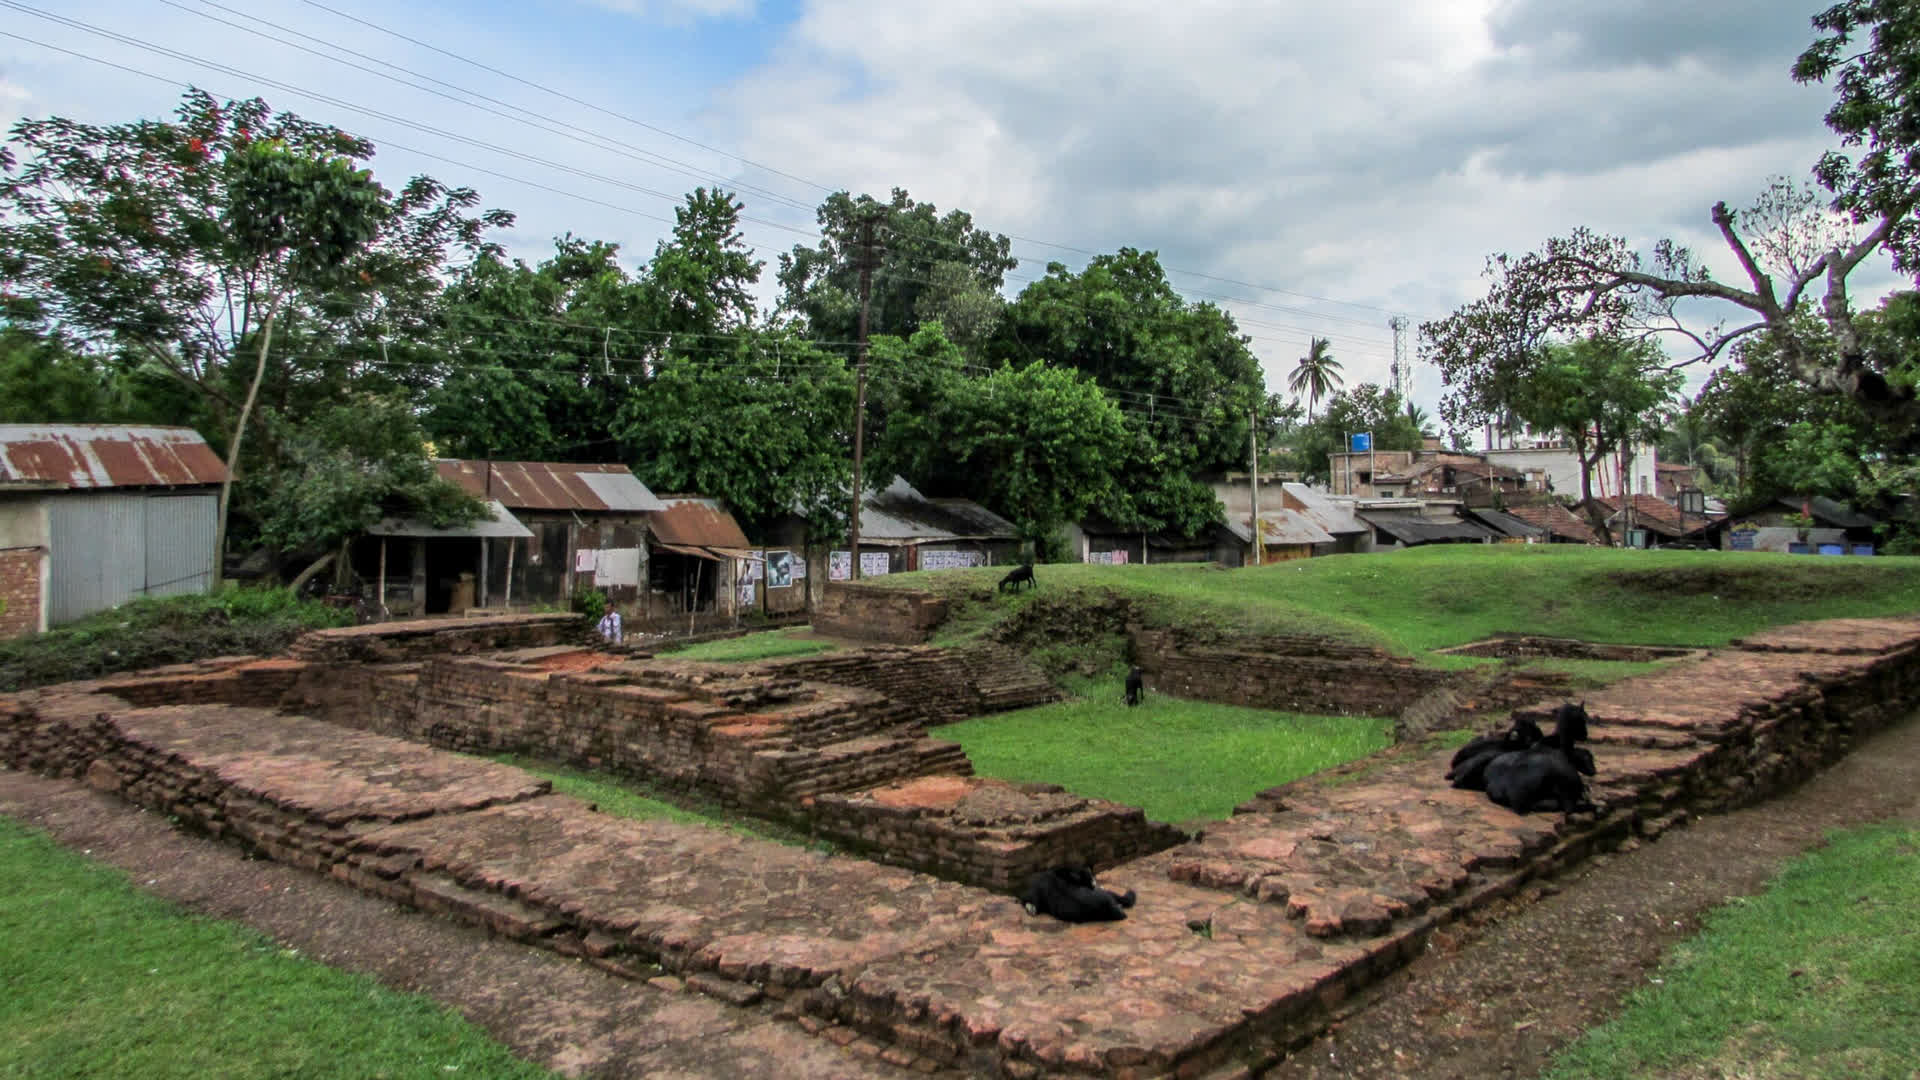 Chandraketugarh: An Enigma in Bengal